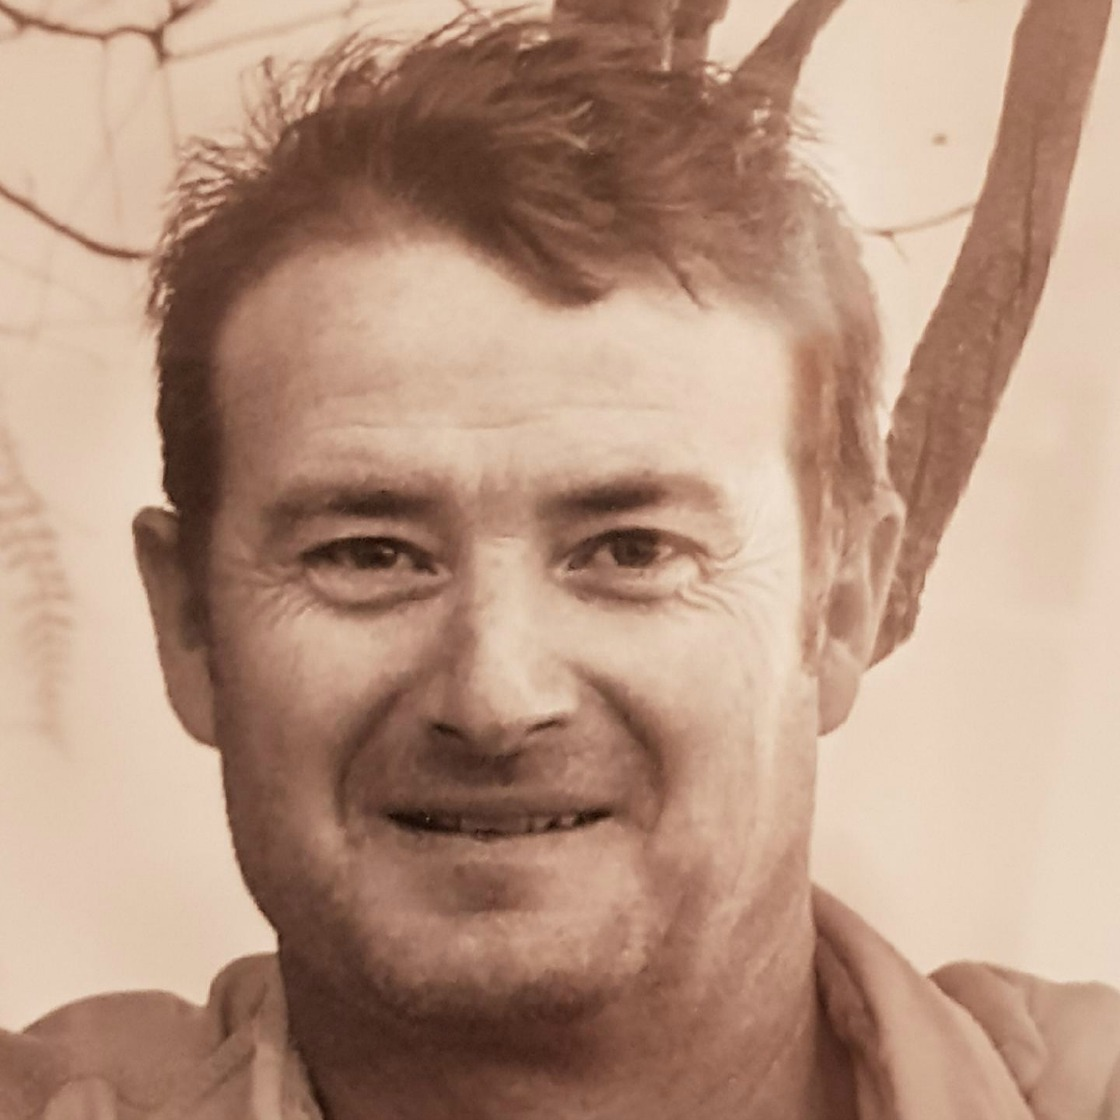 Owen Clapham Windalea Farming   $50,000 AOC Founder   Read Owen's story here